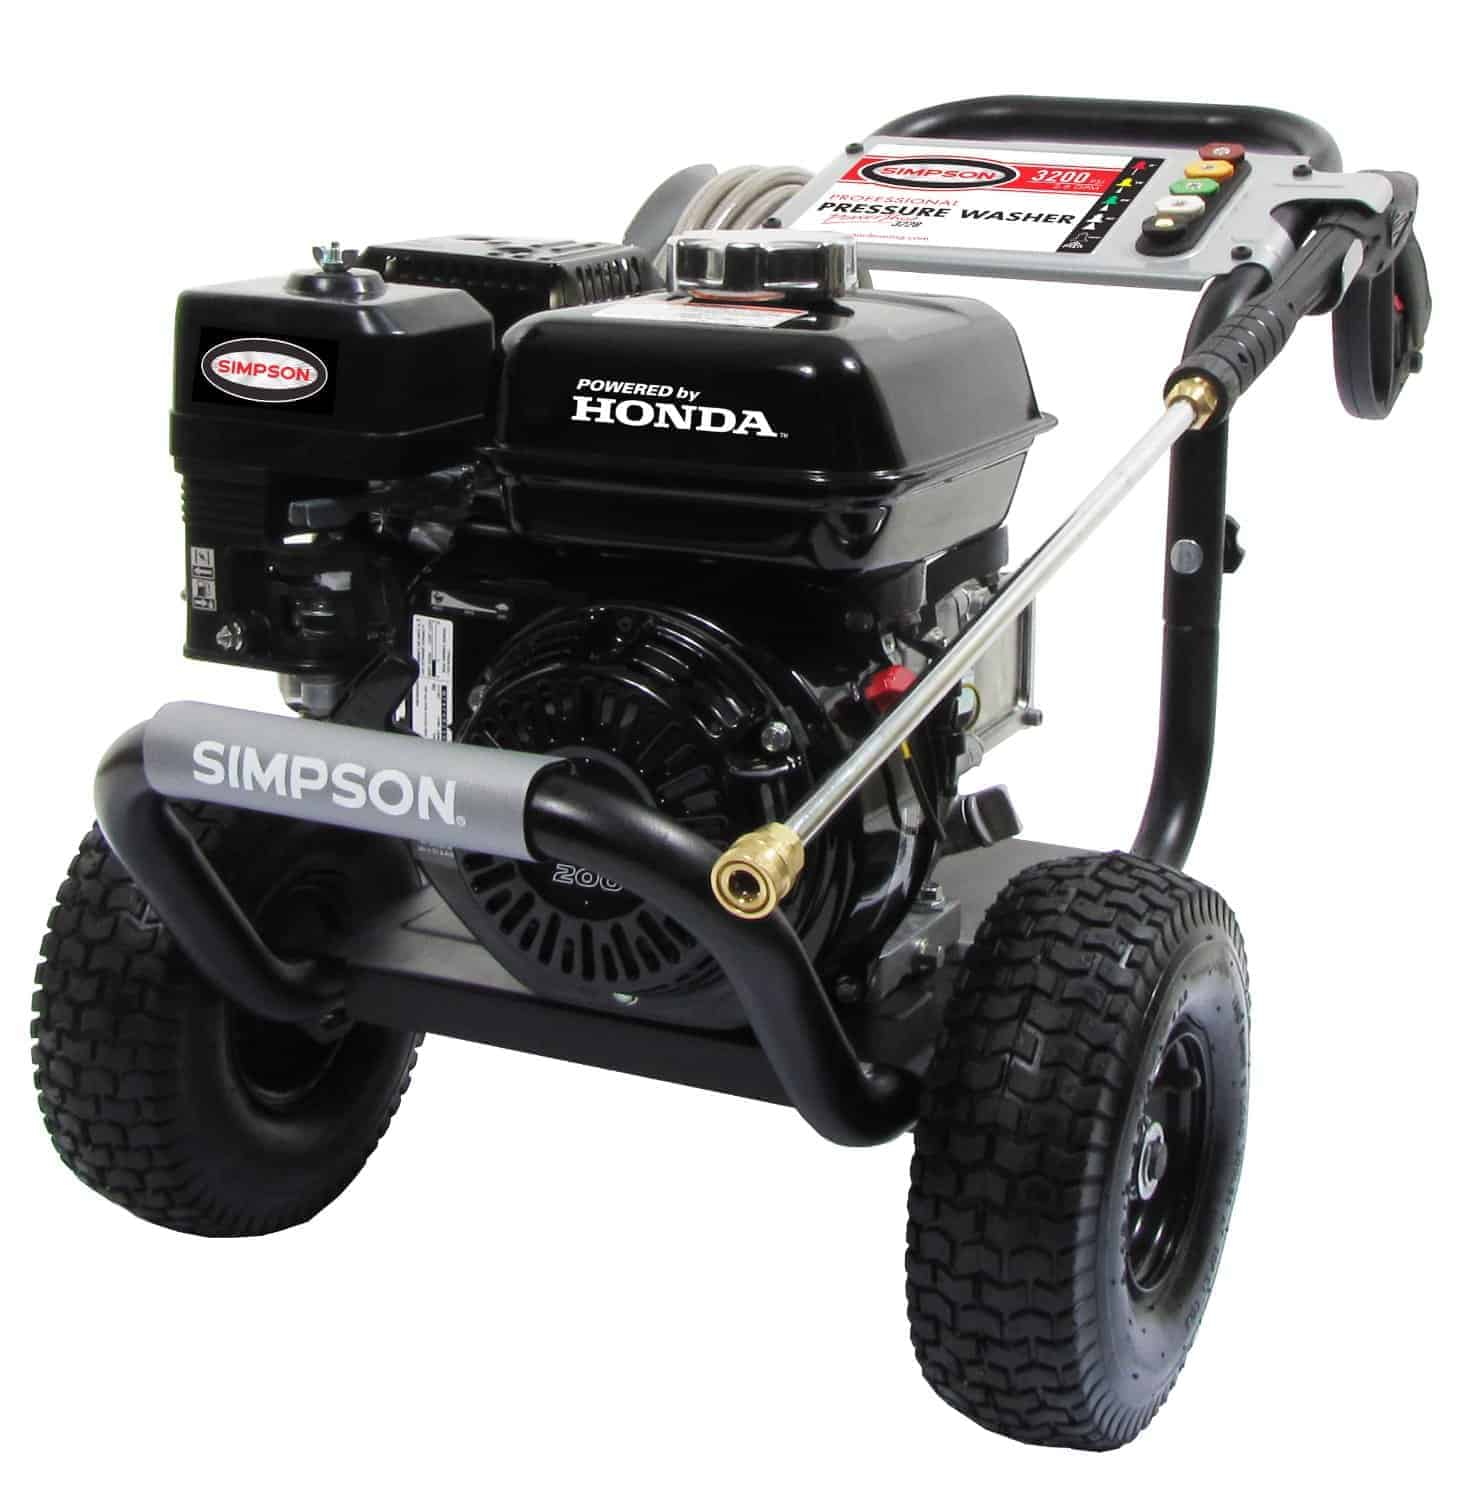 Simpson PS3228-S PowerShot 3200 PSI 2.8 GPM Honda GX200 Engine Gas Pressure Washer review